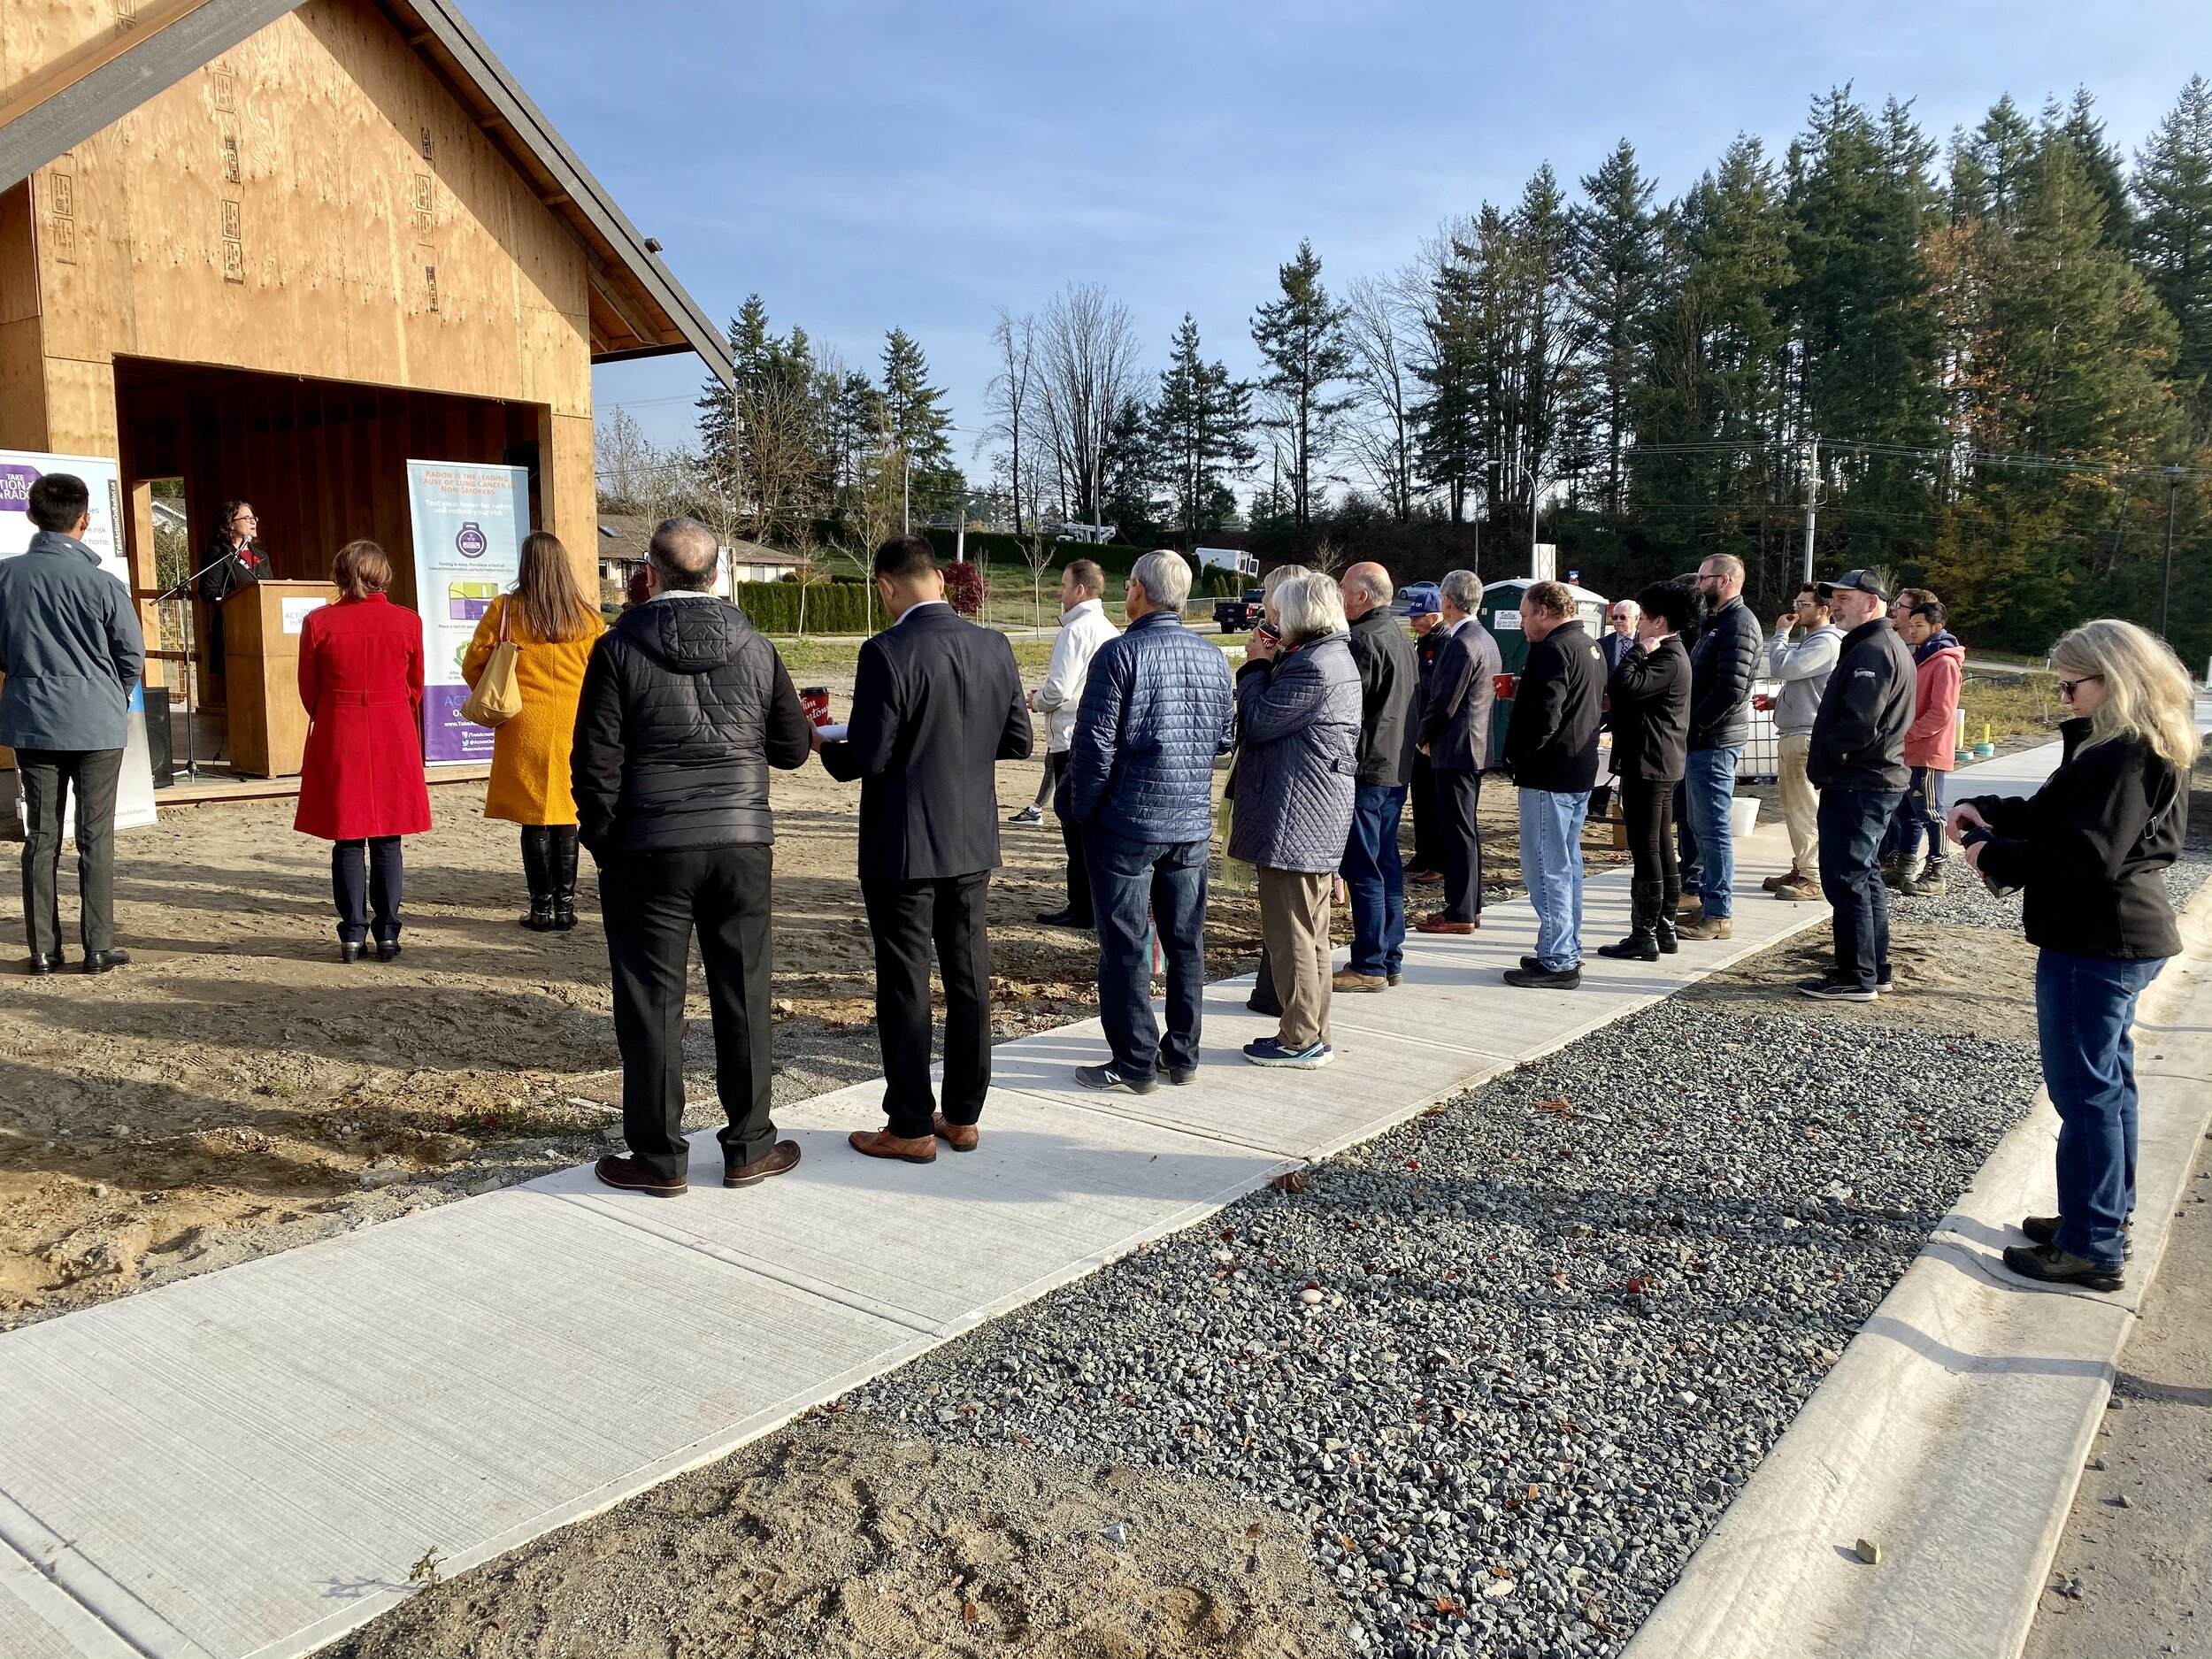 A large crowd attended the event, including City Building Code Officials, Abbotsford Mayor and MLA, Health Canada, Canadian Cancer Society, CARST, as well as Global News and Fairchild TV.